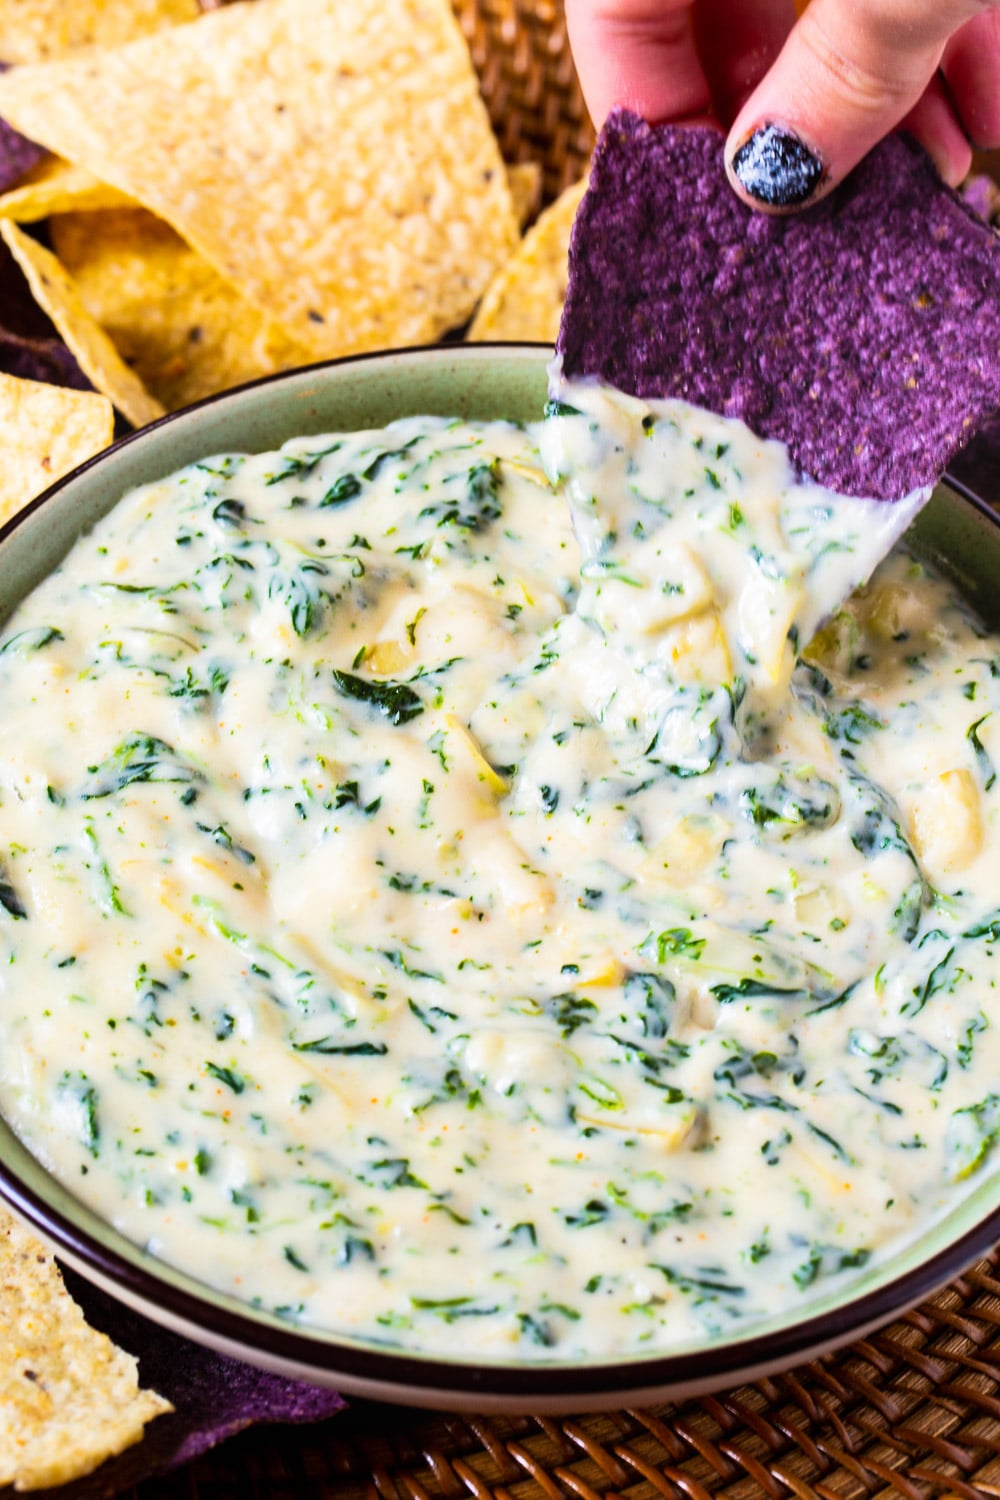 Spinach Dip in a bowl beinf scooped by a tortilla chip.